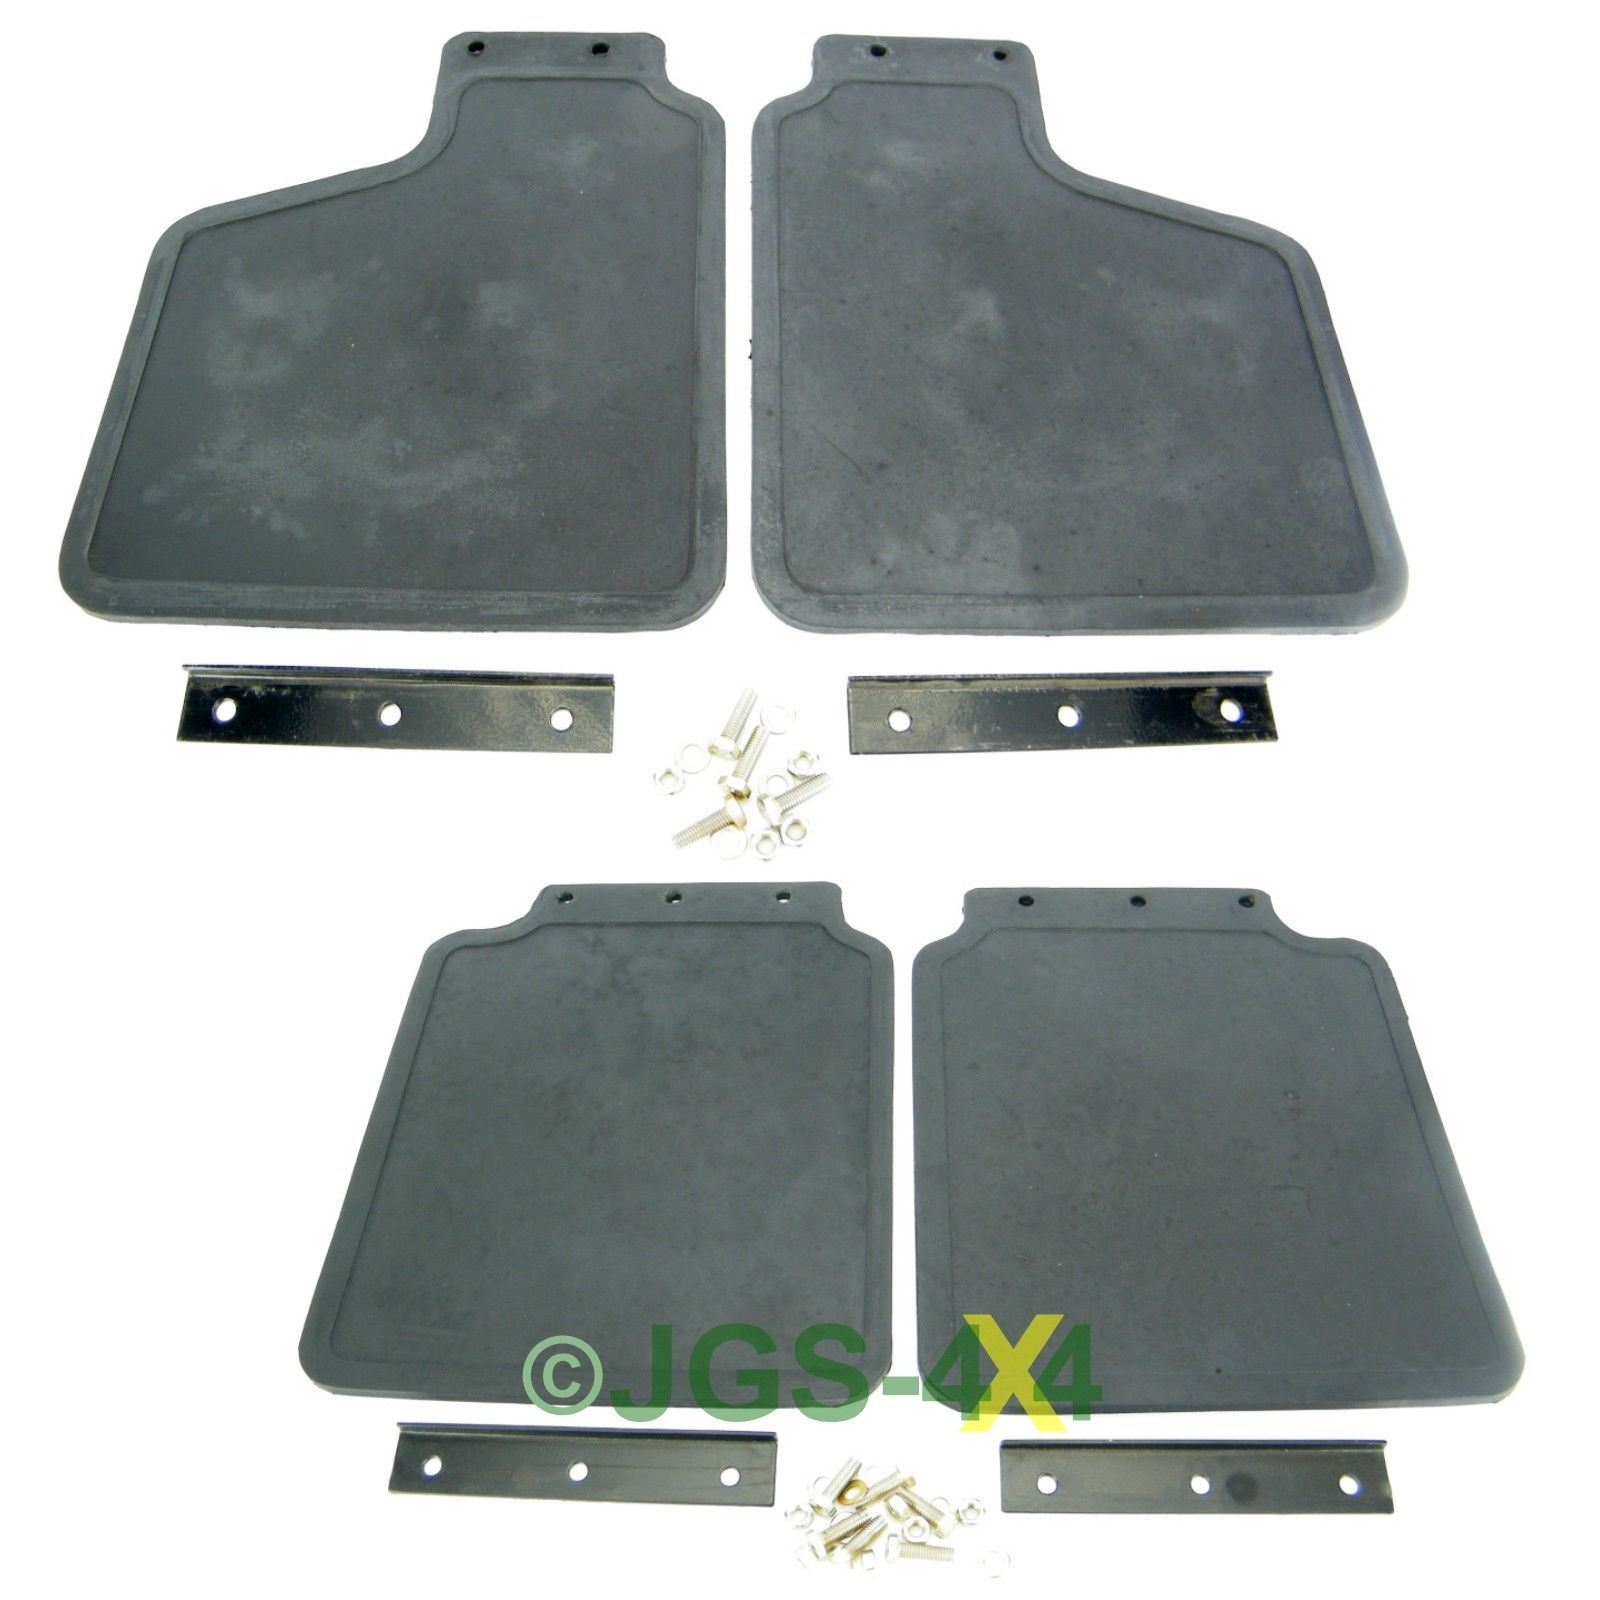 Land Rover Discovery 2 Range Rover P38 Rear Lhs N S: Price: £19.90